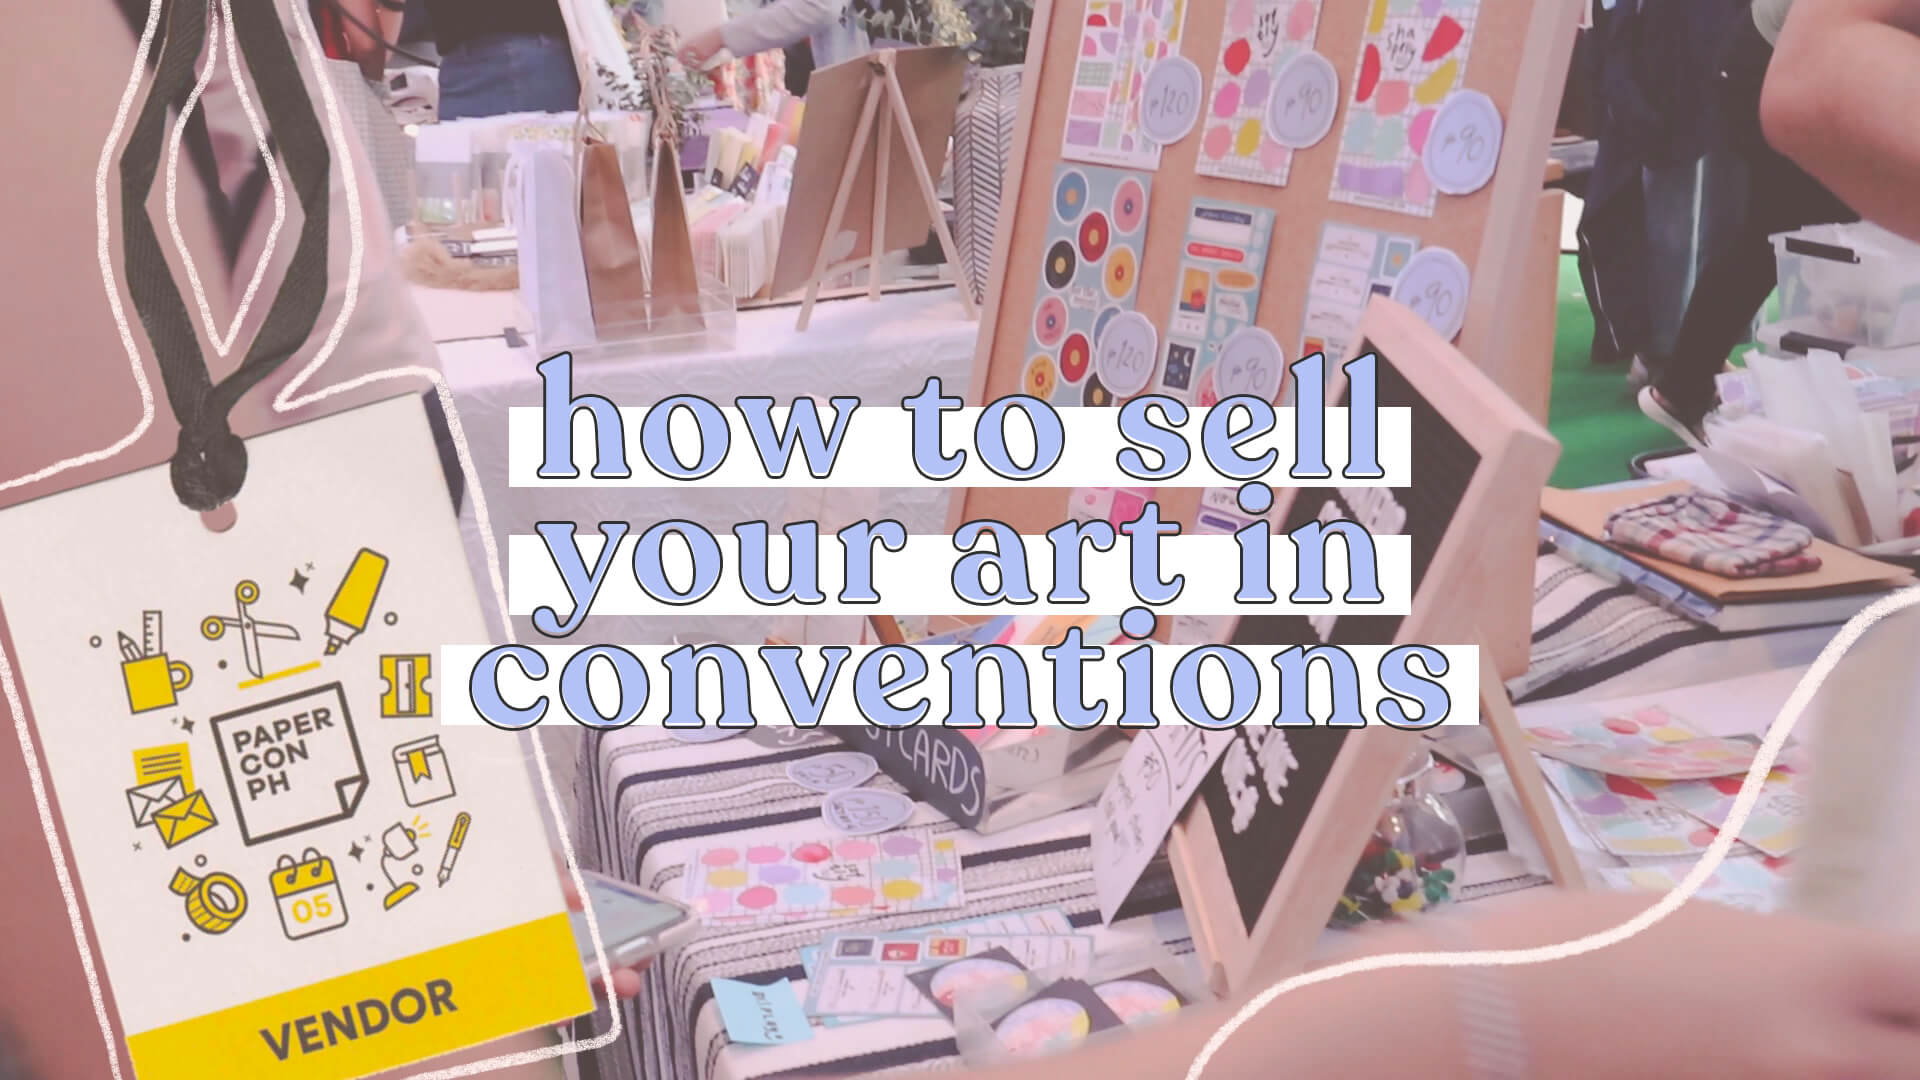 HFEAT_selling-your-art-in-conventions